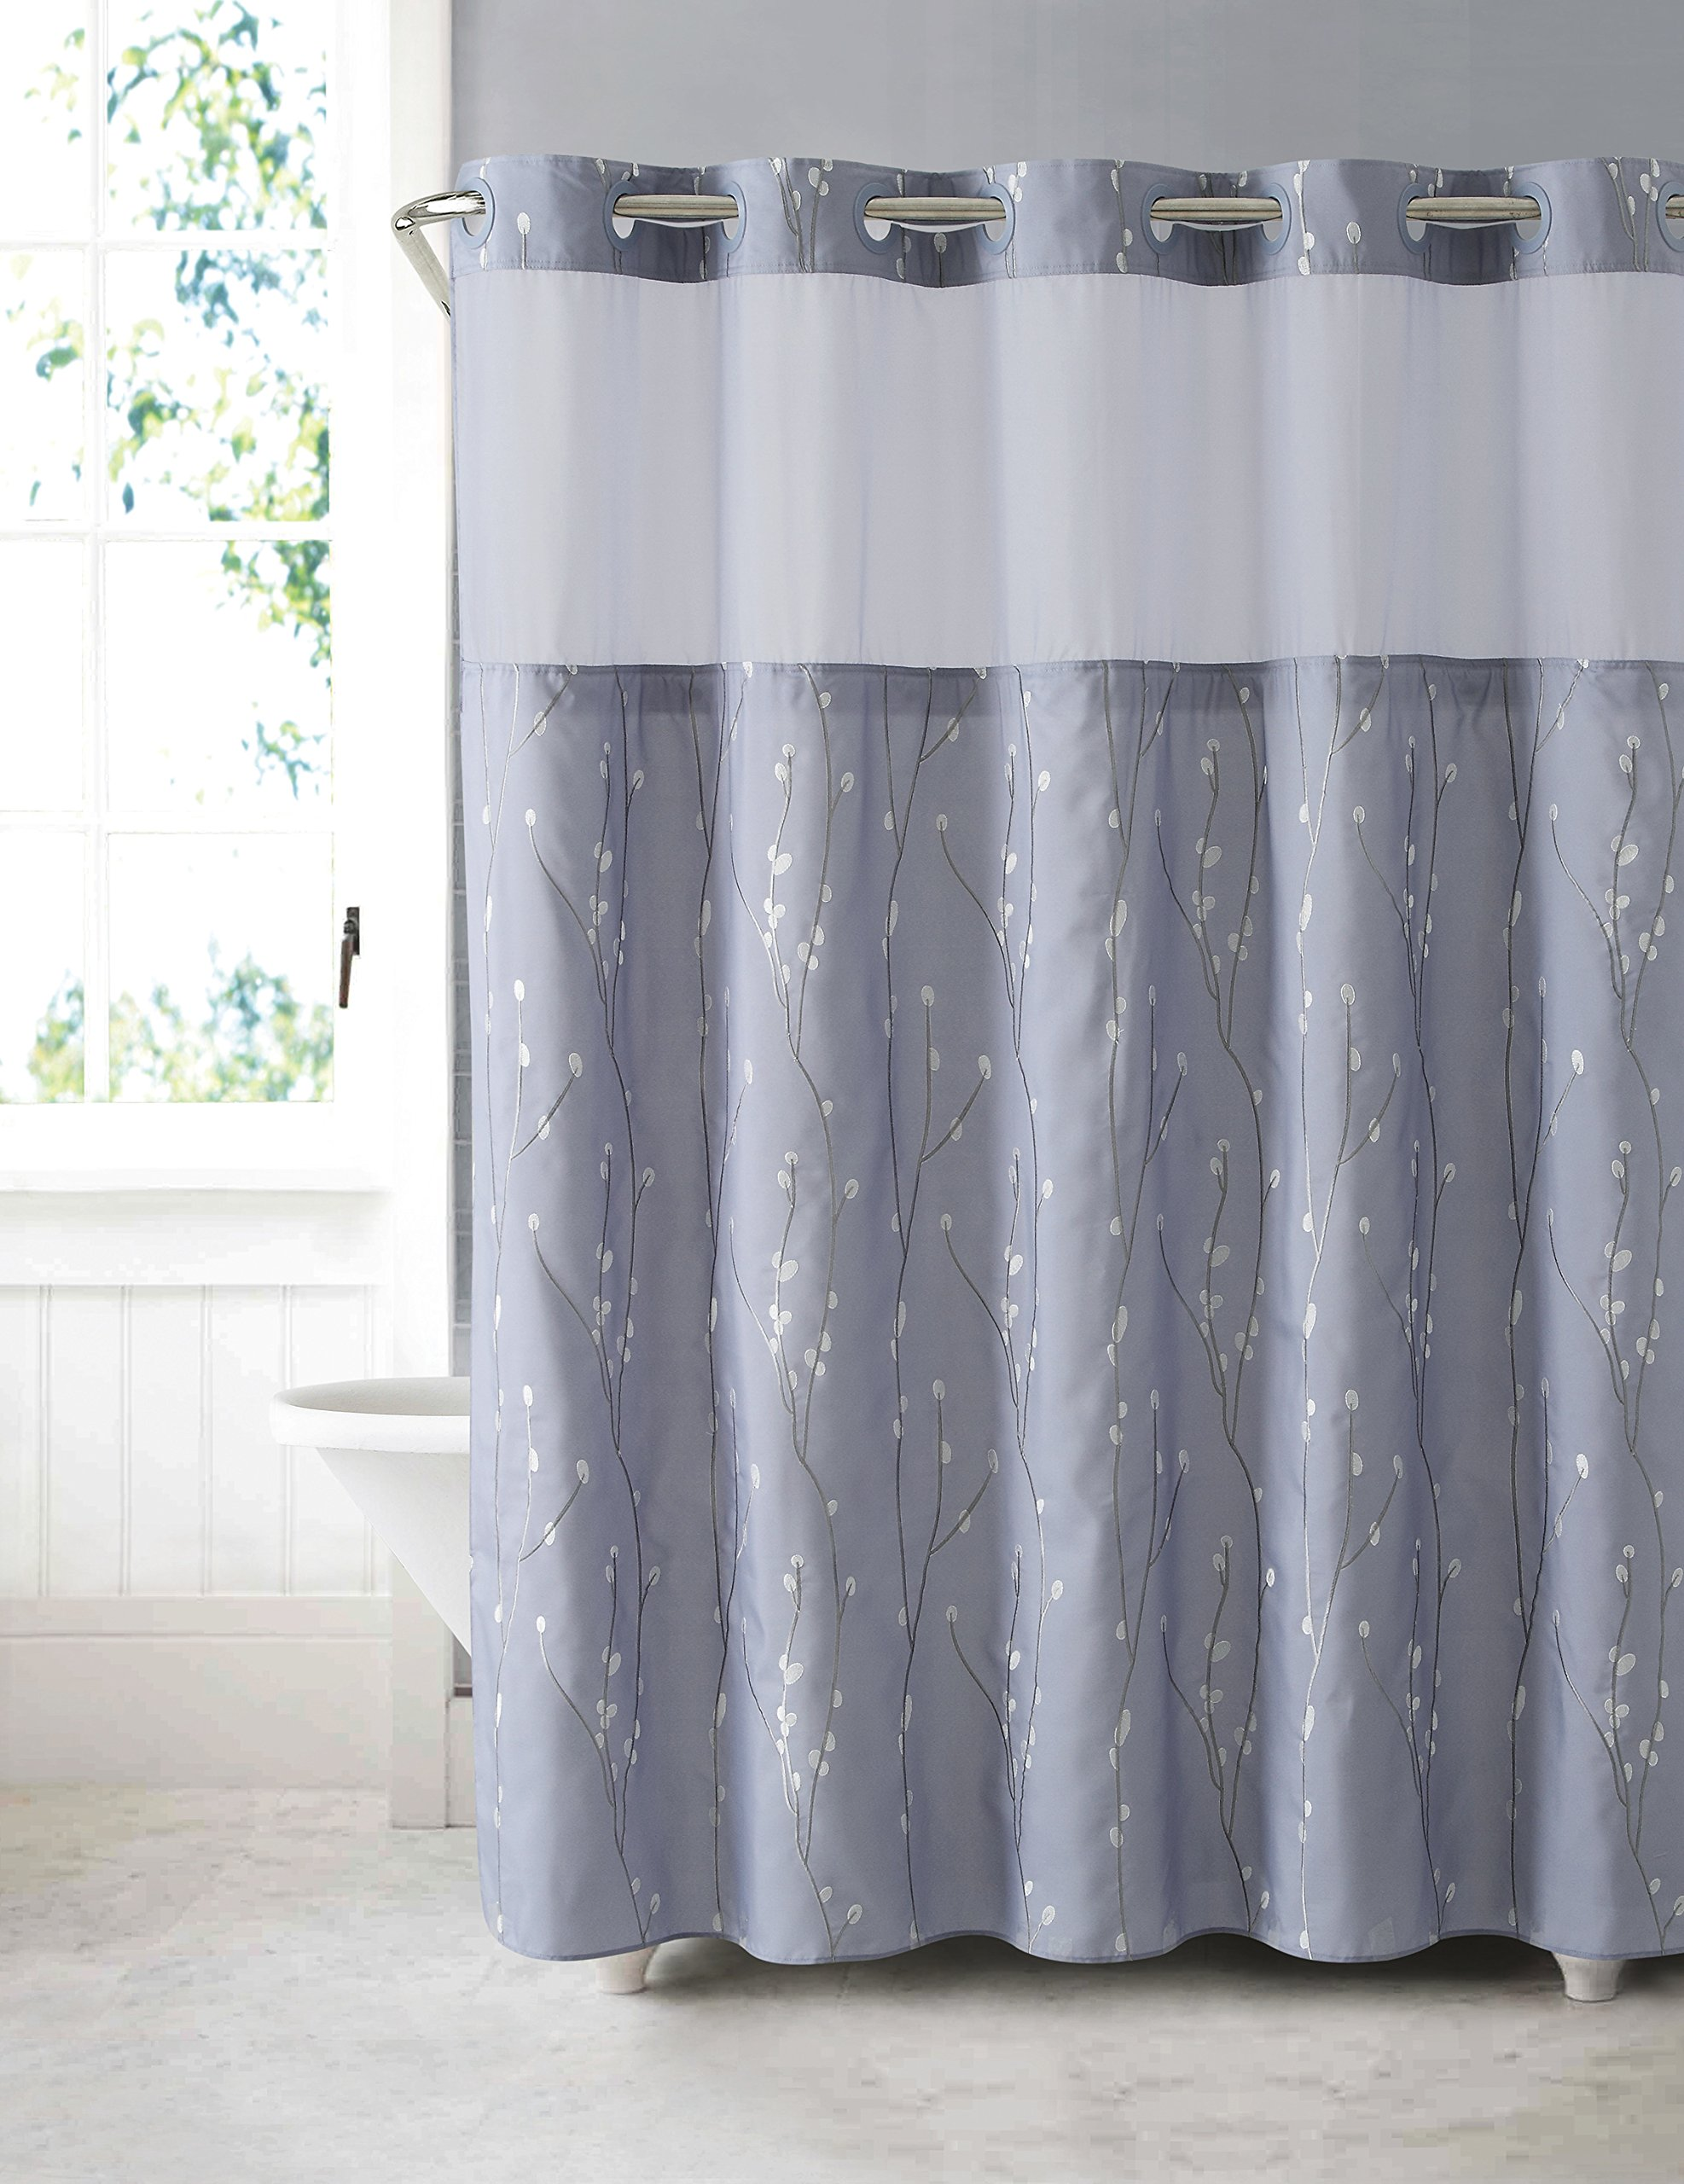 jarret secretly mermaid bed curtains shower wayfair pdx a kids coolest bath curtain zoomie